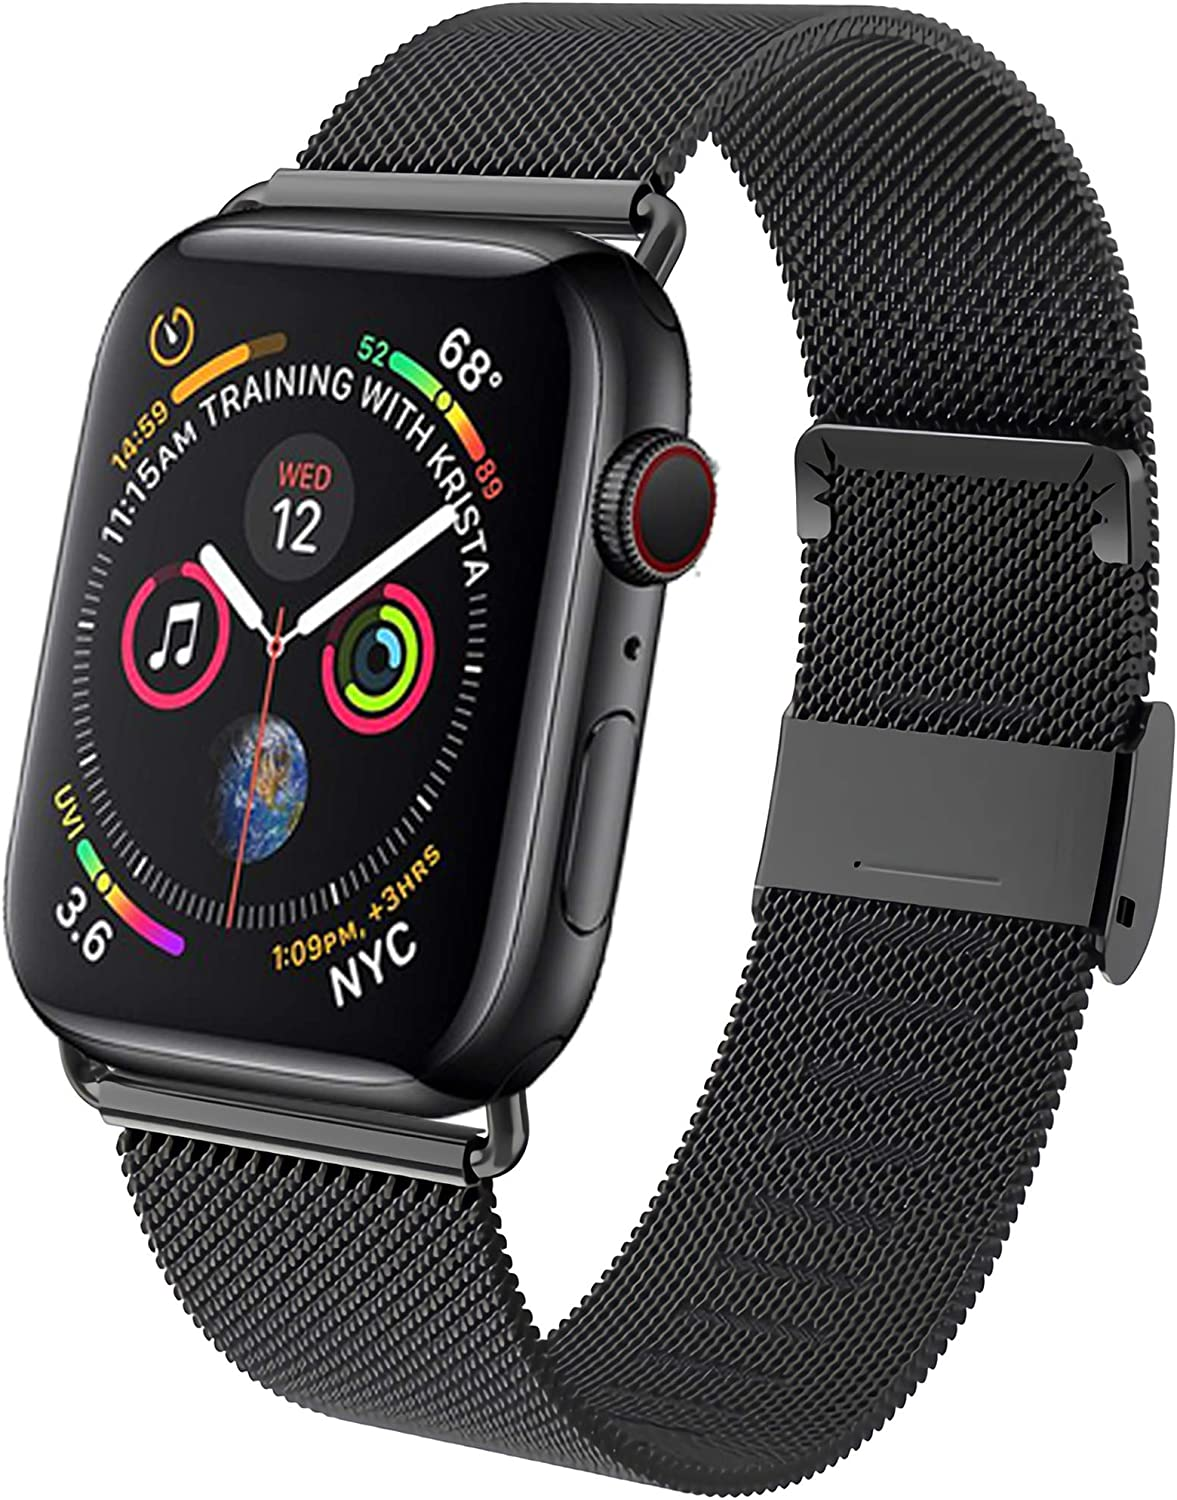 GBPOOT Band Compatible with Apple Watch Band 38mm 40mm 42mm 44mm, Wristband Loop Replacement Band for Iwatch Series 6/SE/5/4/3/2/1,Black,38mm/40mm